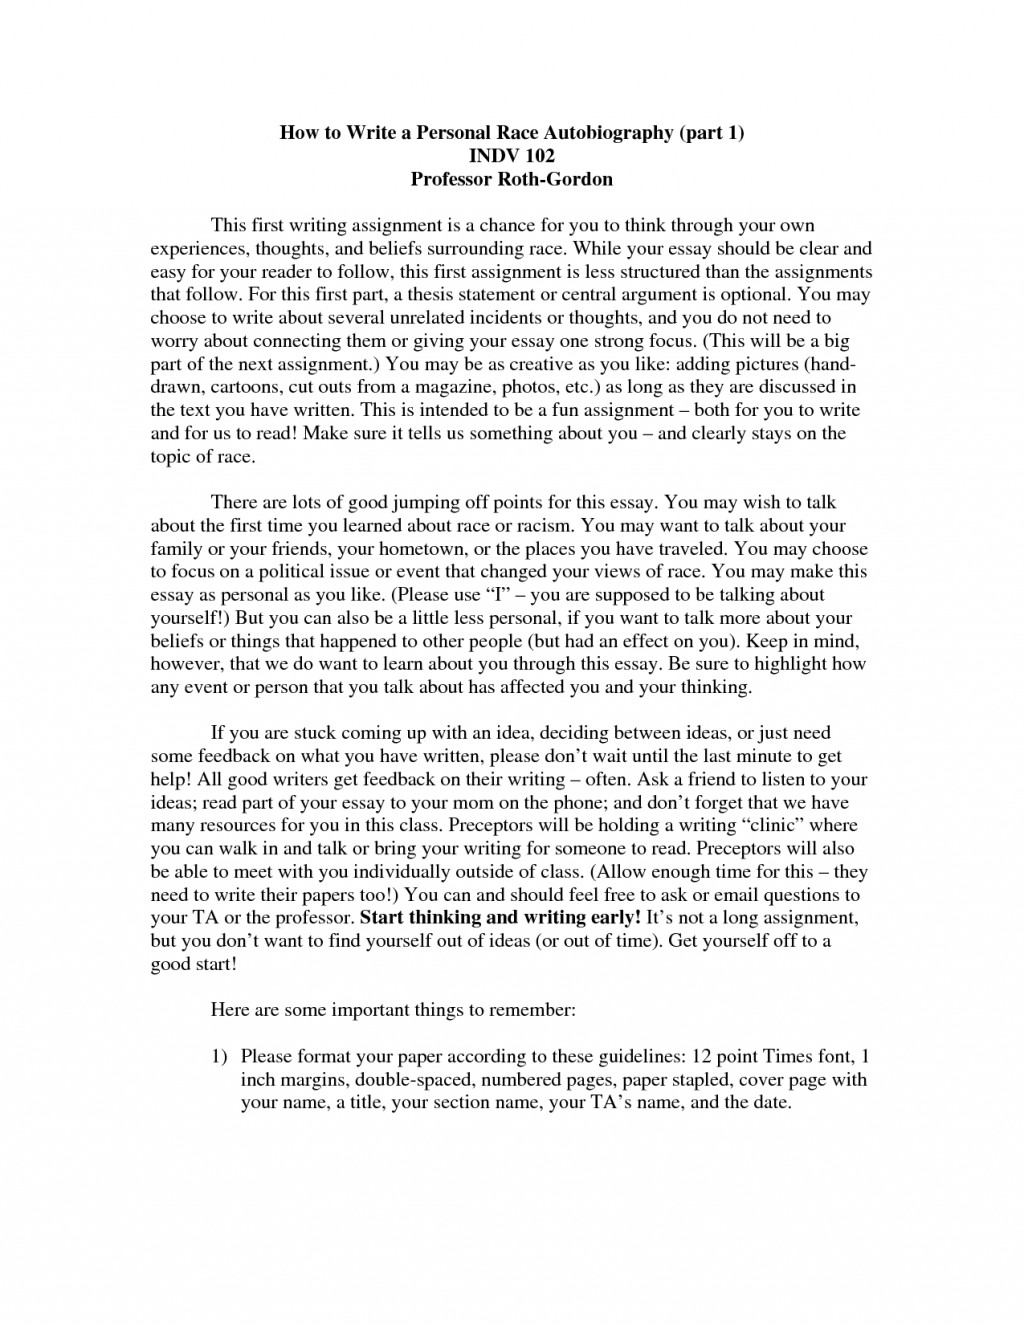 014 Essay Example How To Start Autobiography About Yourself Write Autobiographical For Scholarship College Biographical Examples On Make Narrative Myself Singular An Annotated Bibliography A Good Large